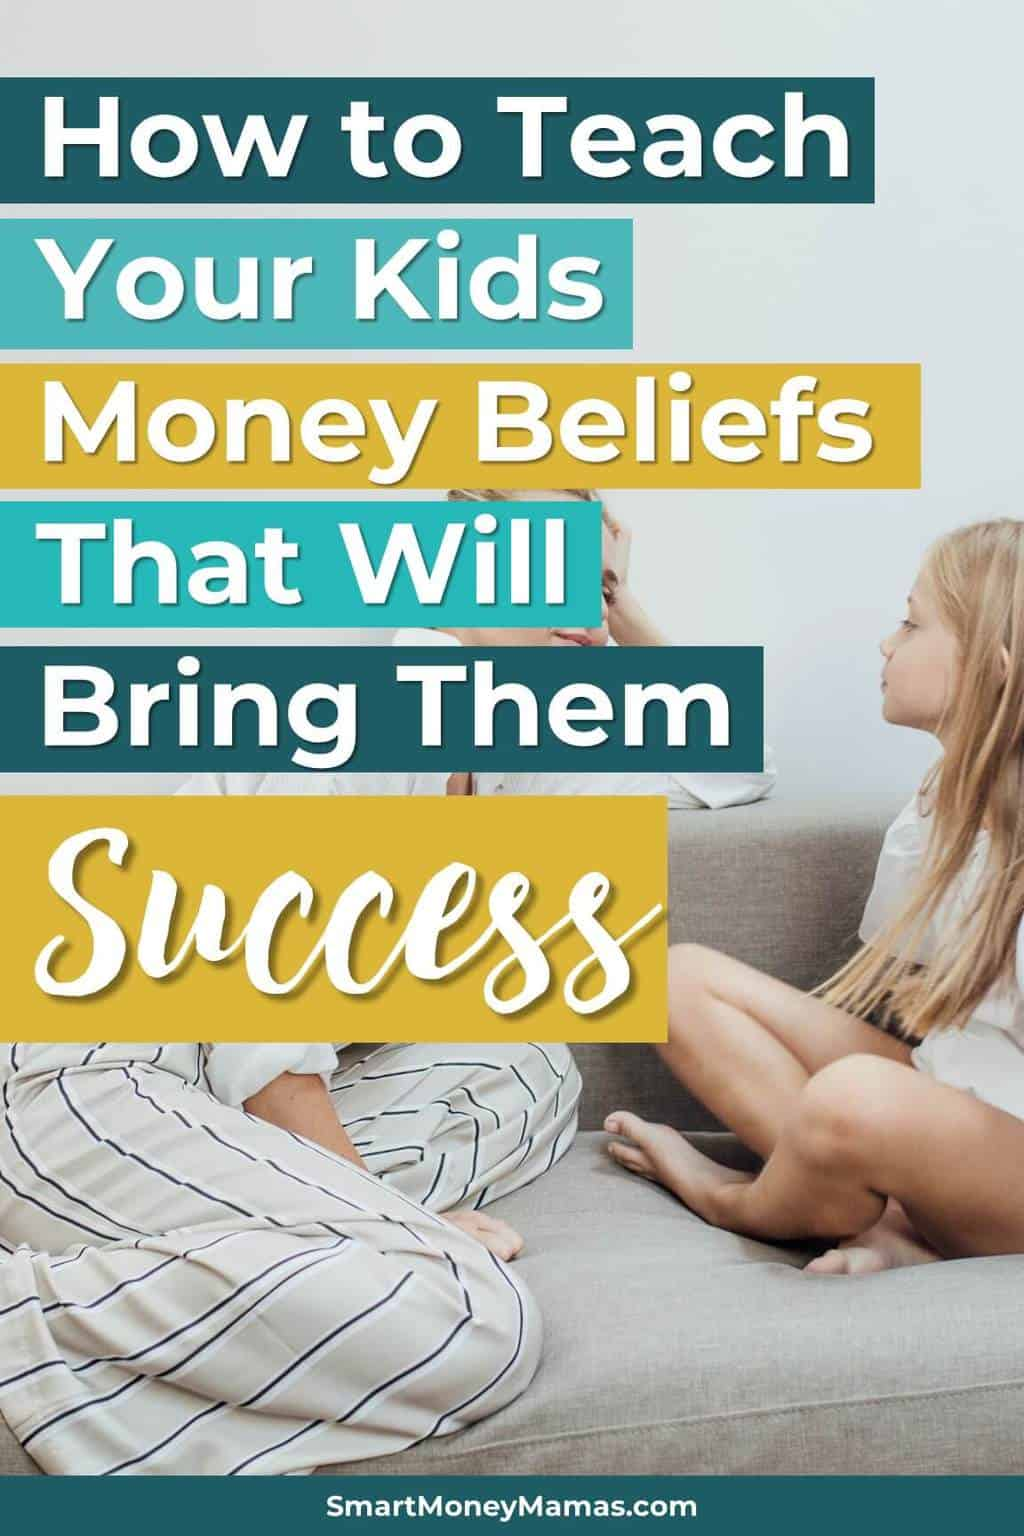 How to Teach Your Kids Money Beliefs That Will Bring Them Success